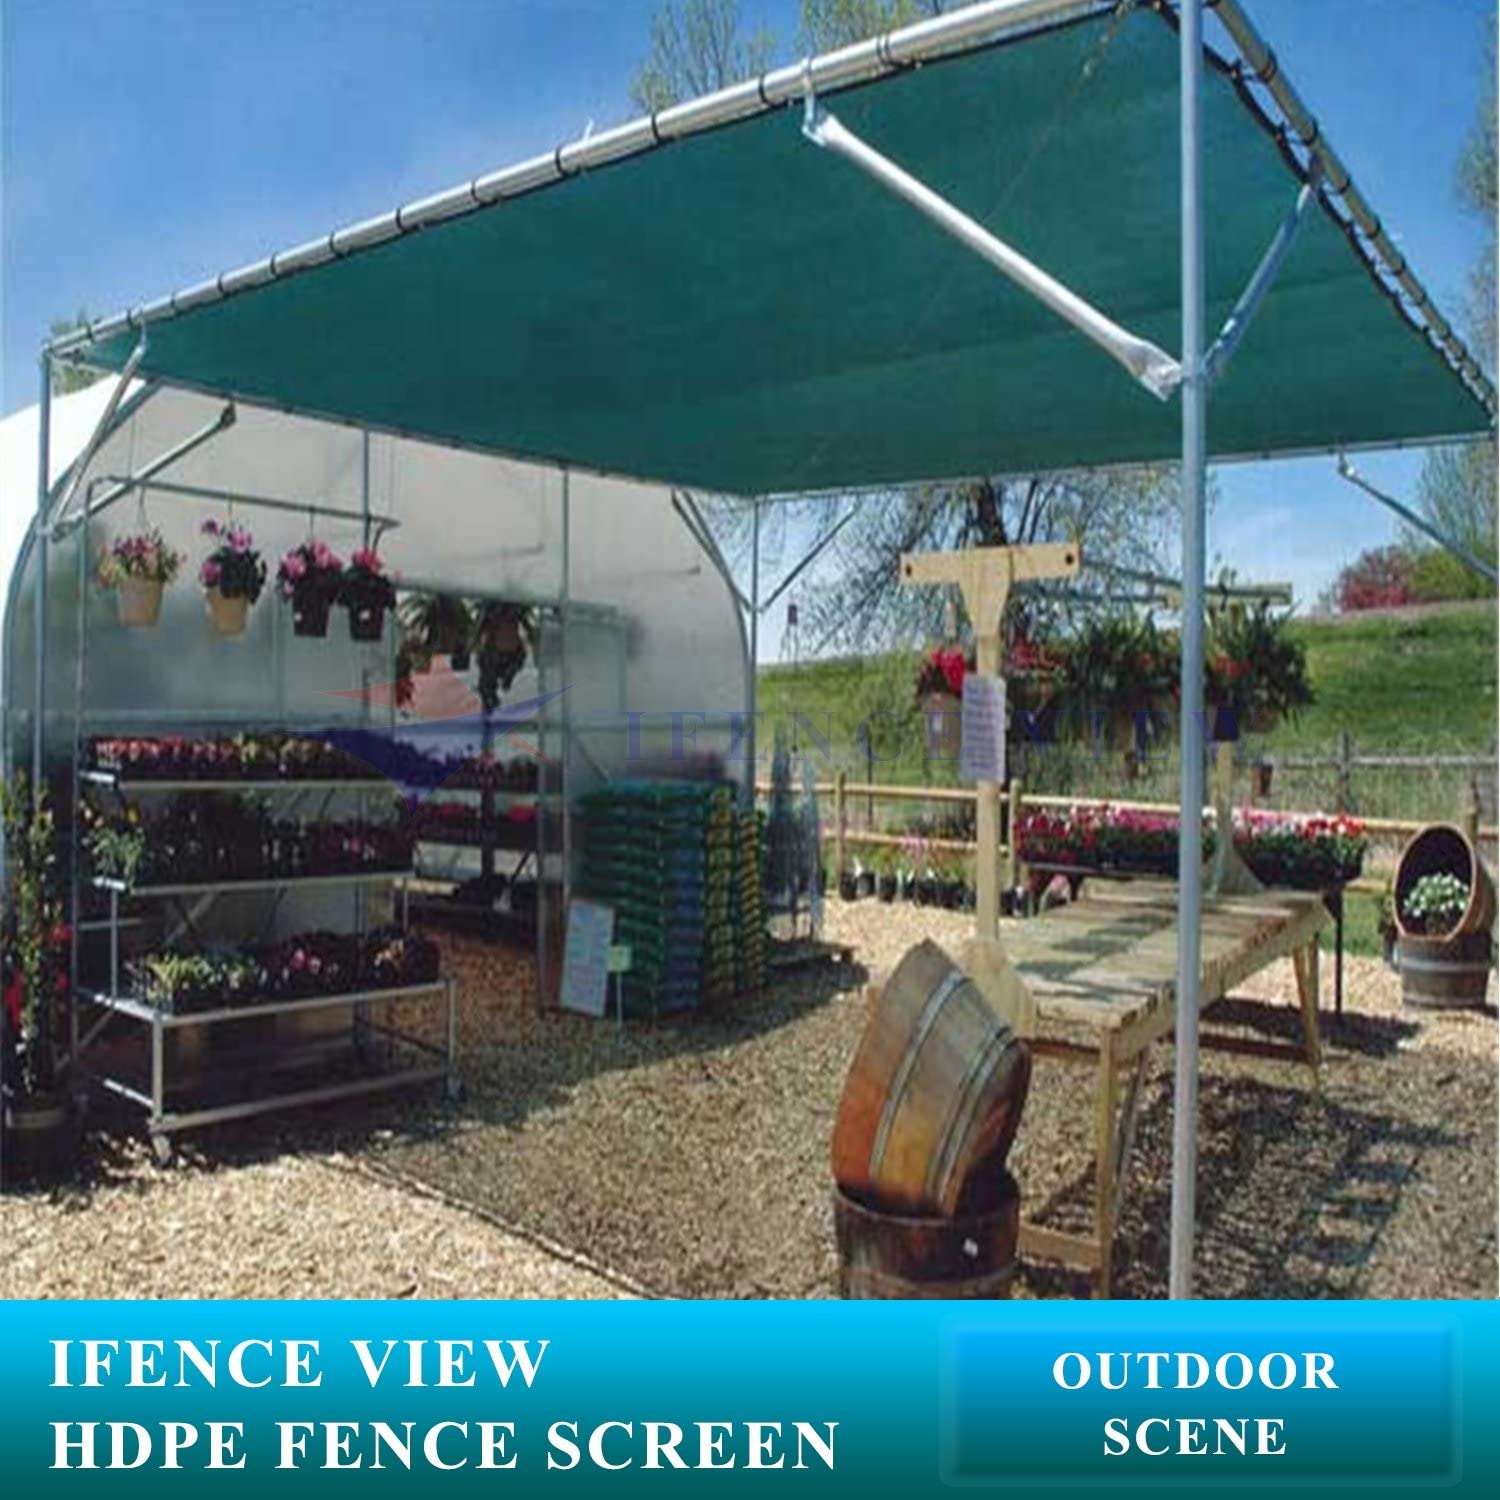 Ifenceview 5x100 Green Shade Cloth Fence Privacy Screen Fence Cover Mesh Net for Construction Site Yard Driveway Garden Pergolas Gazebos Canopy Awning UV Protection